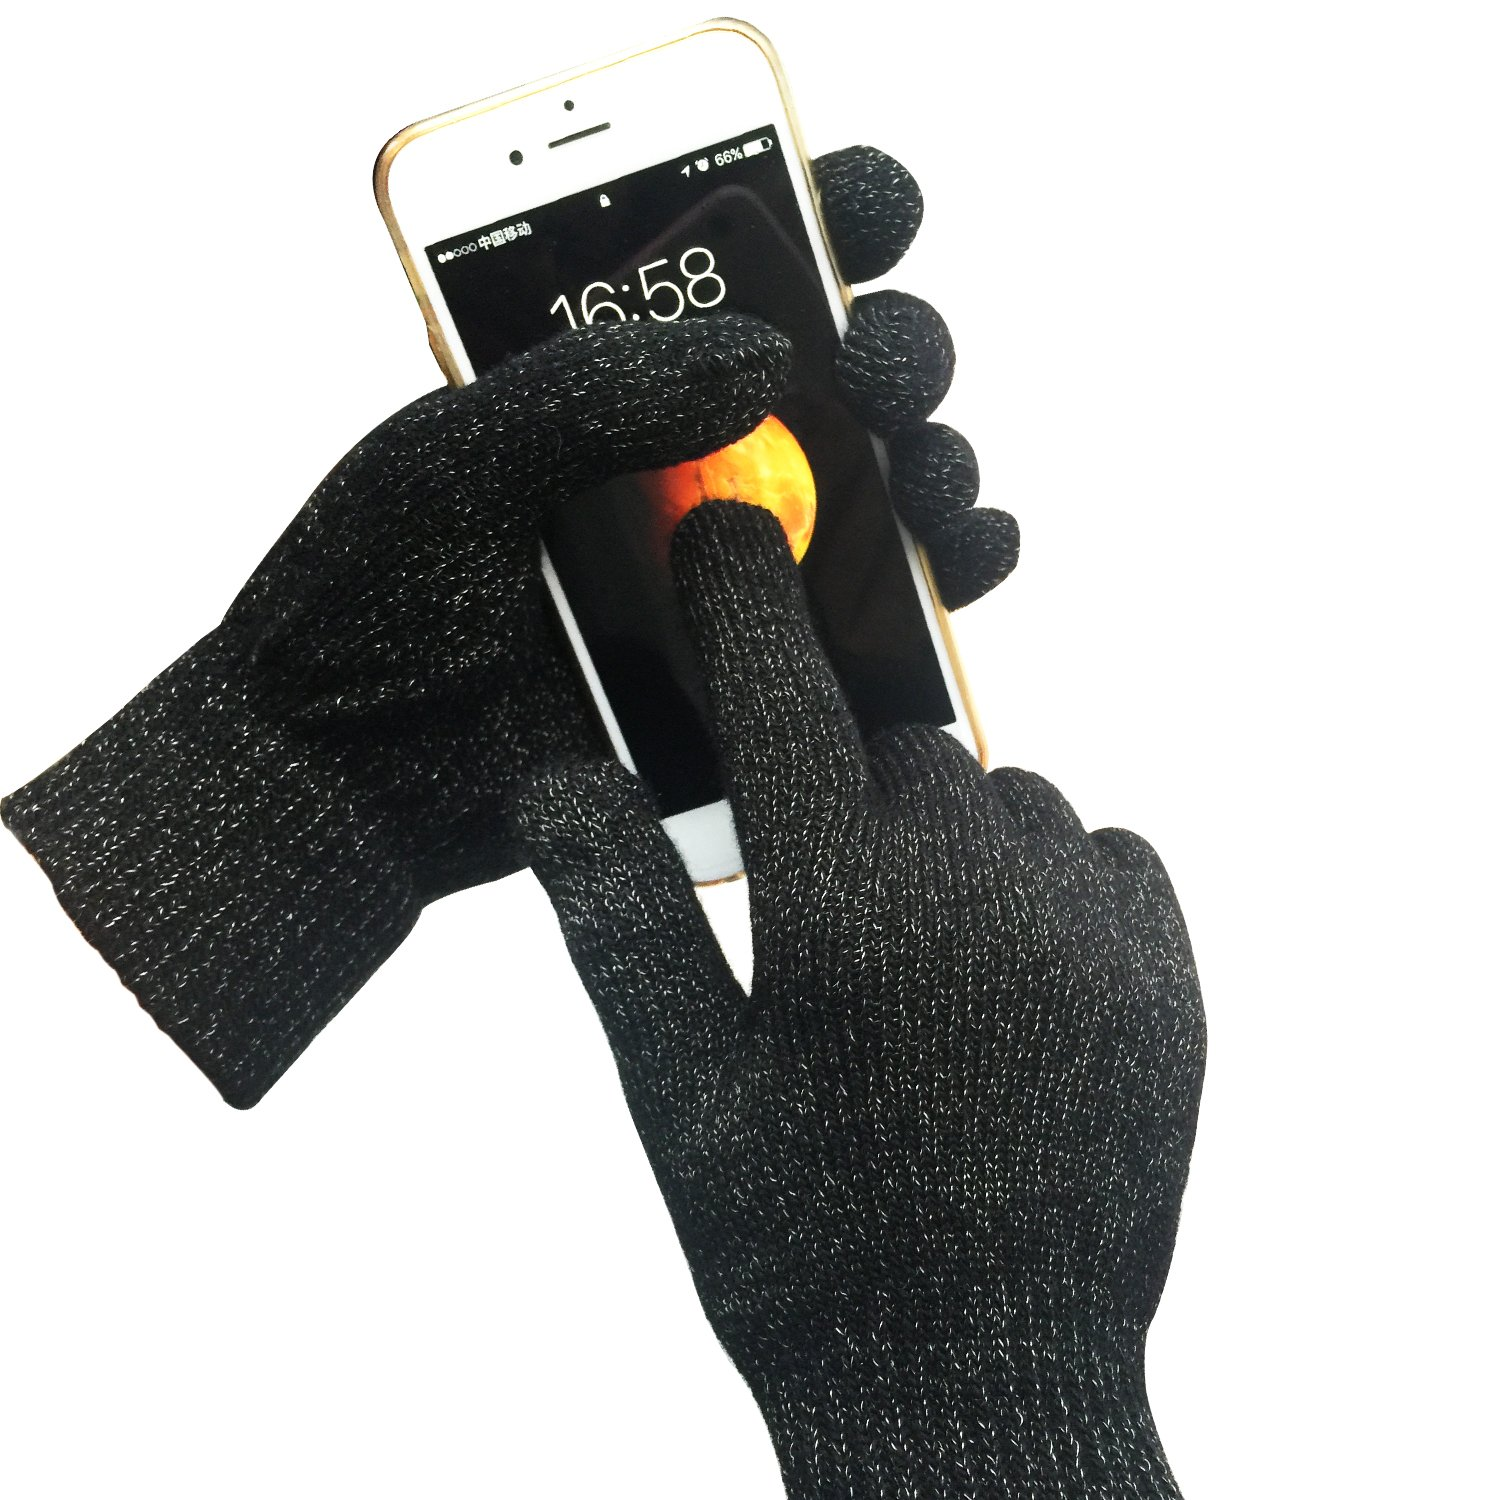 Mens gloves for smartphones - Amazon Com Unisex Sport Touchscreen Gloves Iphone Gloves Texting Gloves For Smartphones Tablets Sports Outdoors